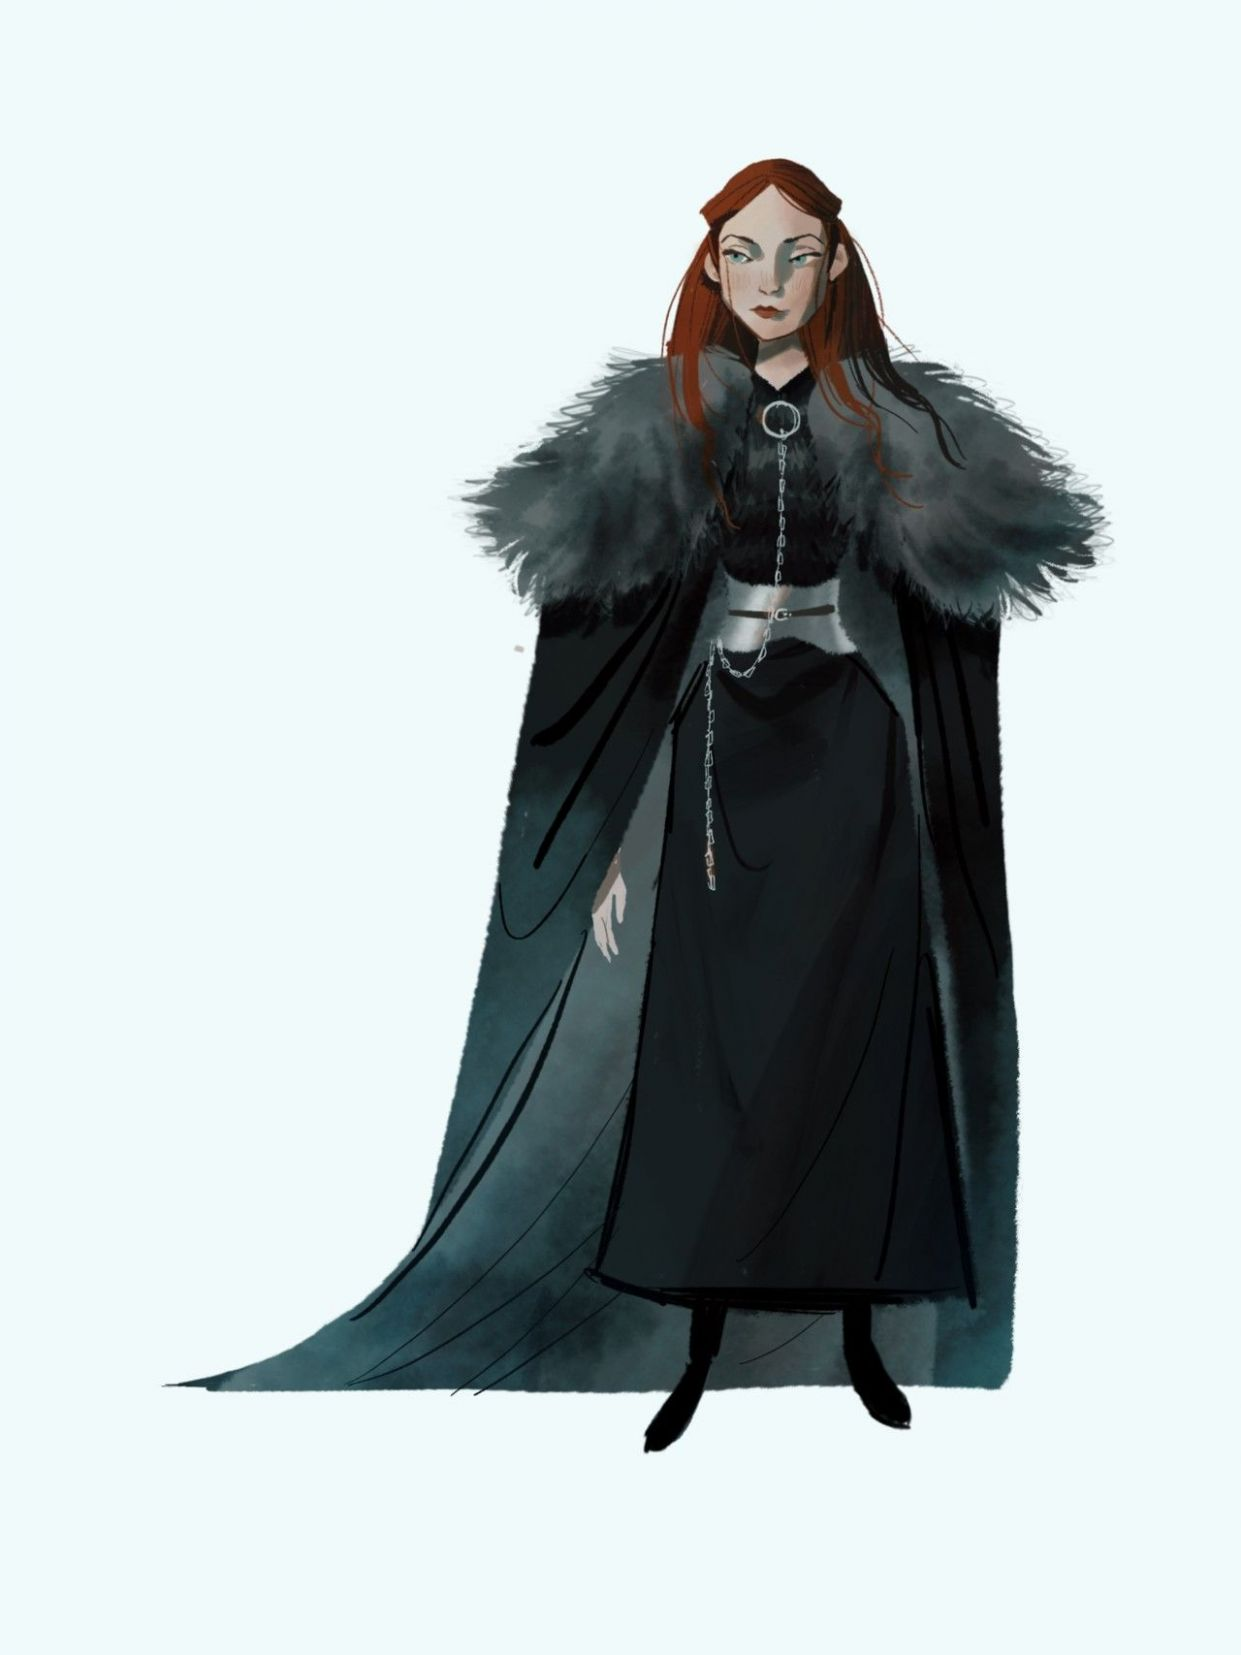 Pin by Minda on Game of thrones art | Game of thrones art, Stark ...